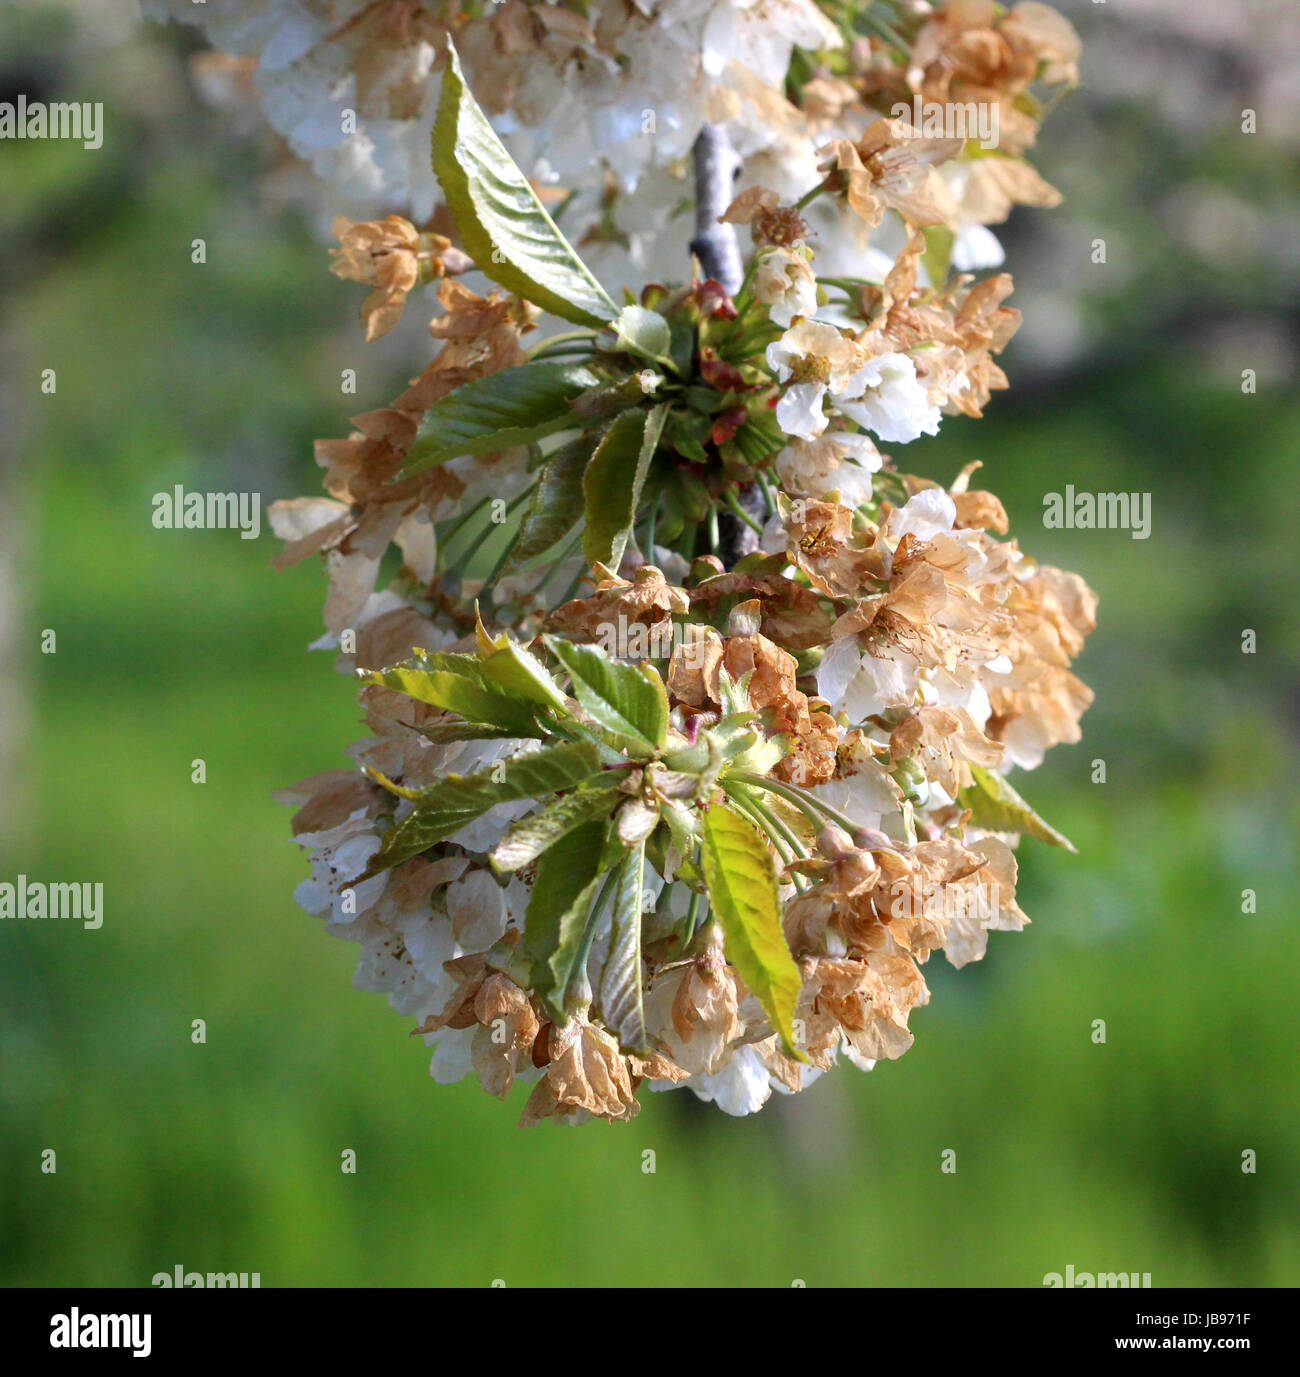 cherry blossom damaged by morning frost in region of prespa,macedonia,iamge of a - Stock Image